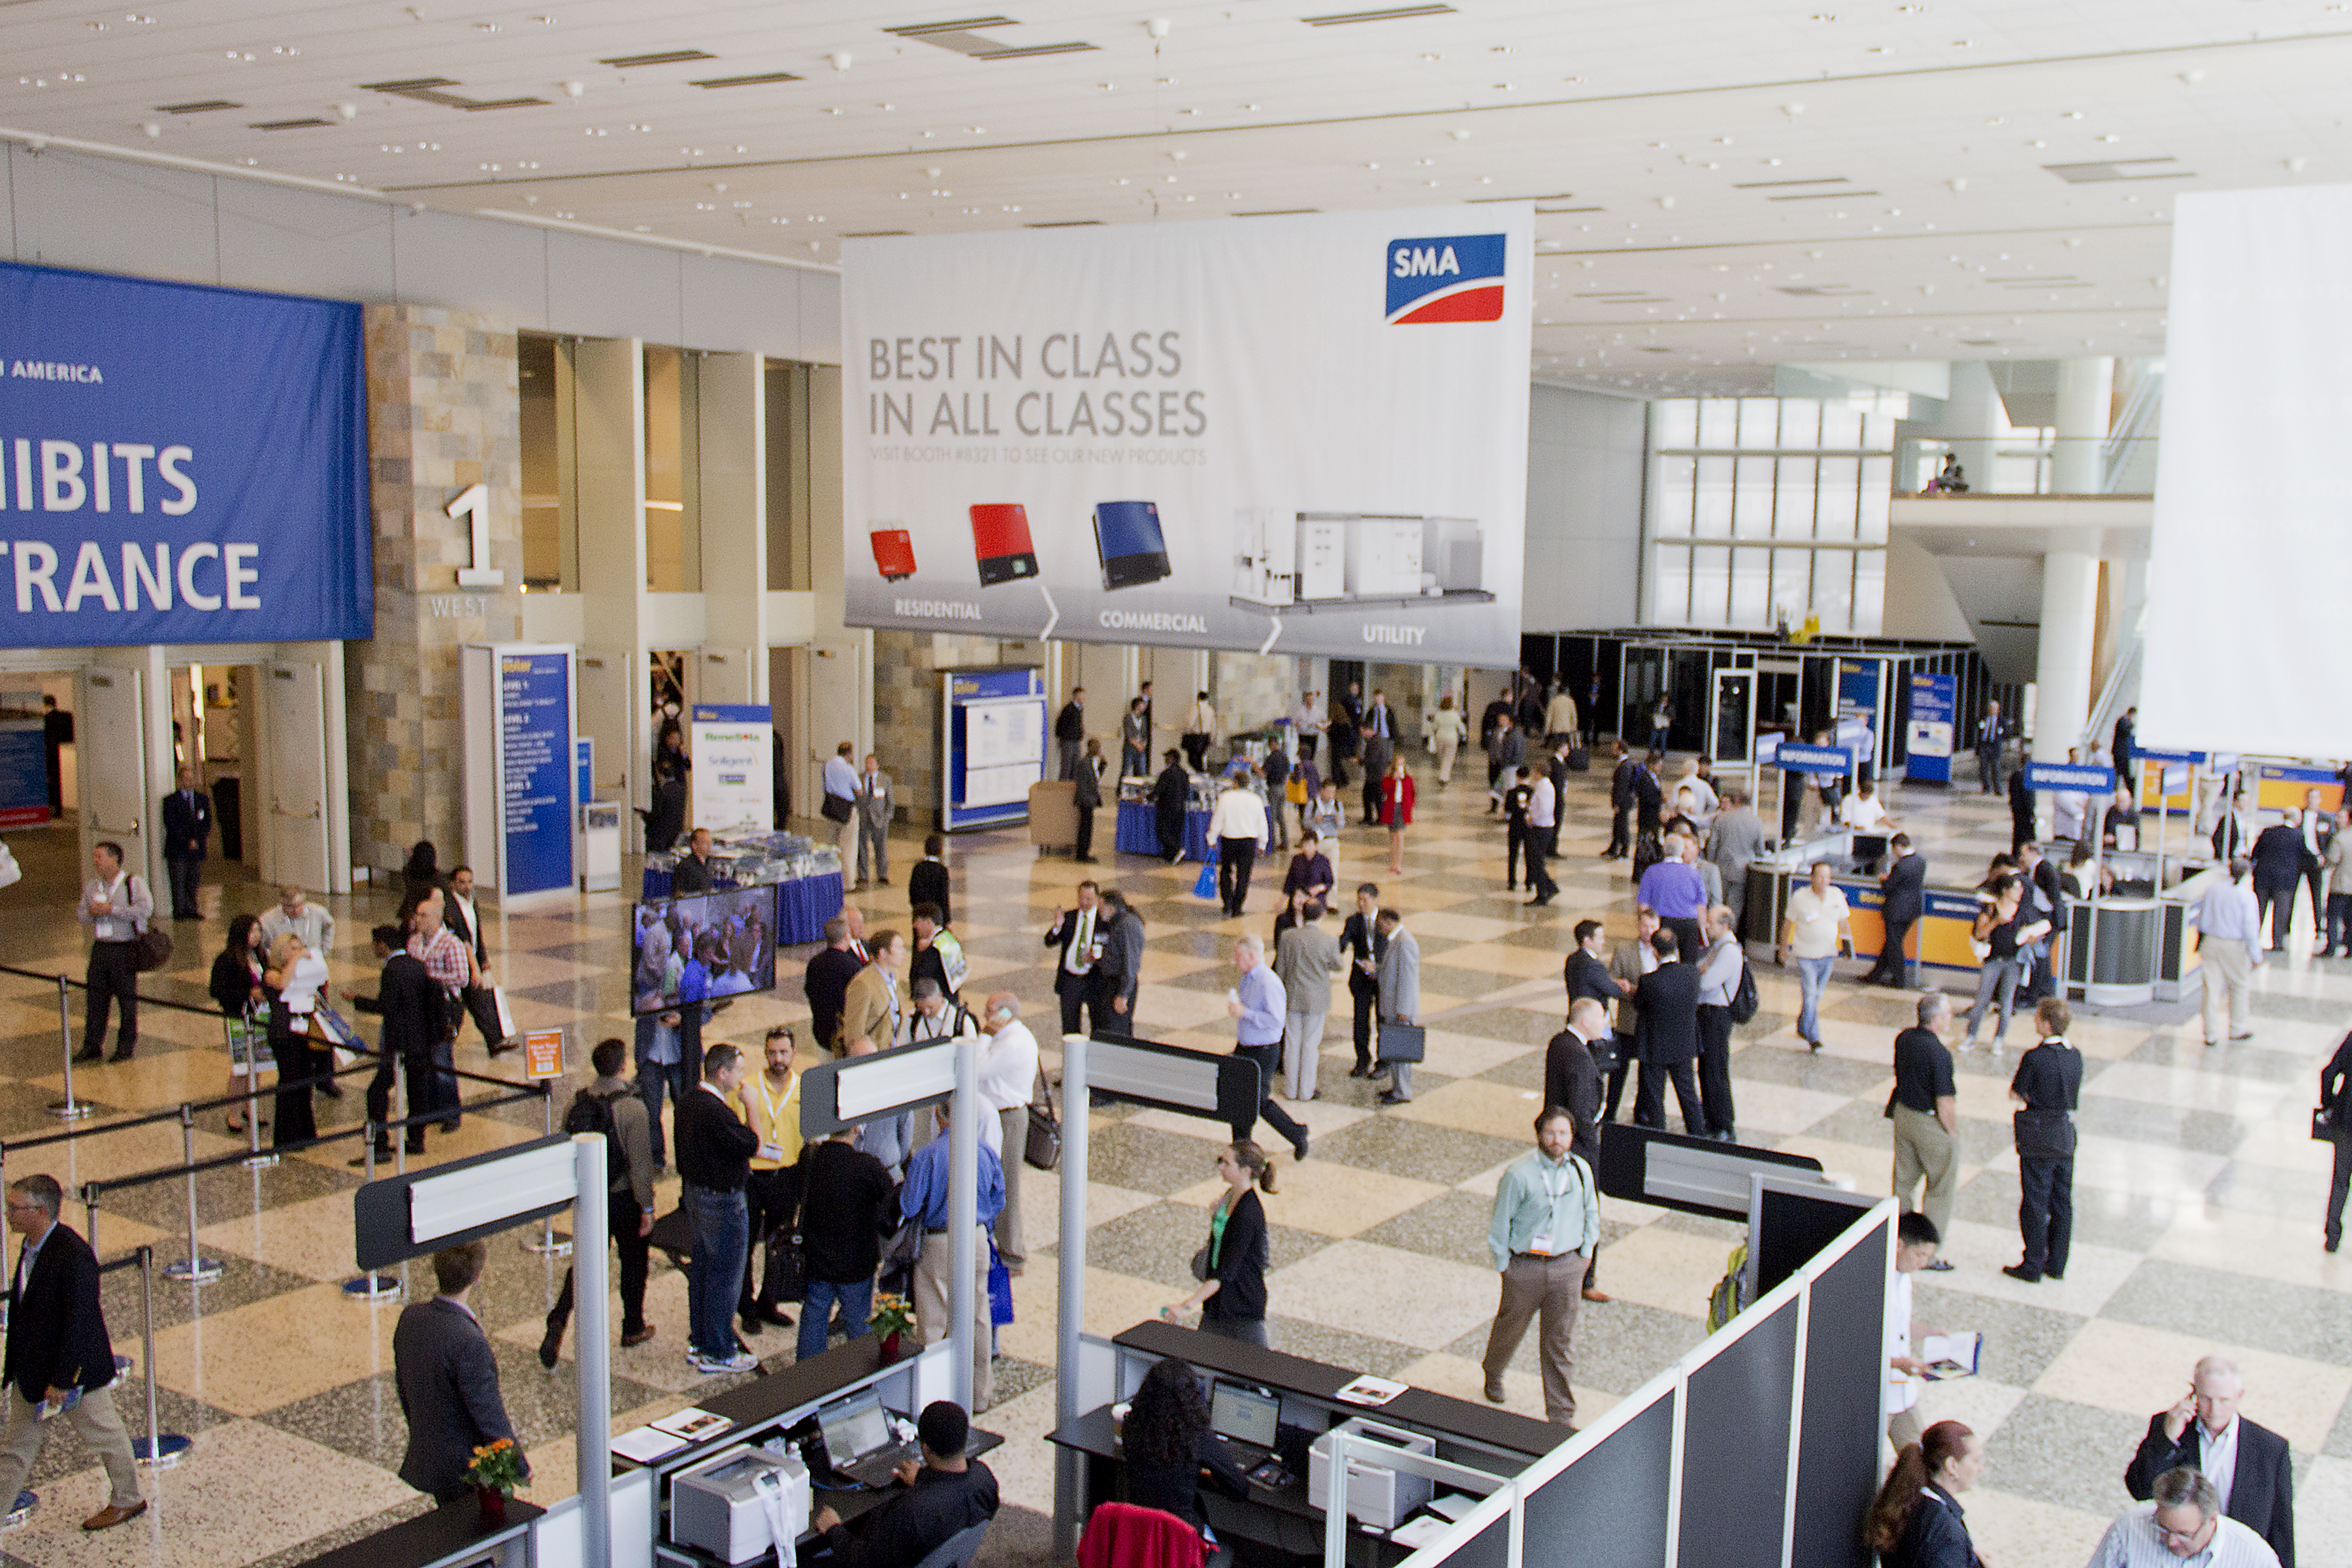 Entering the Mascone Convention Center - Attendees were reminded that SMA offers products in all size classes.